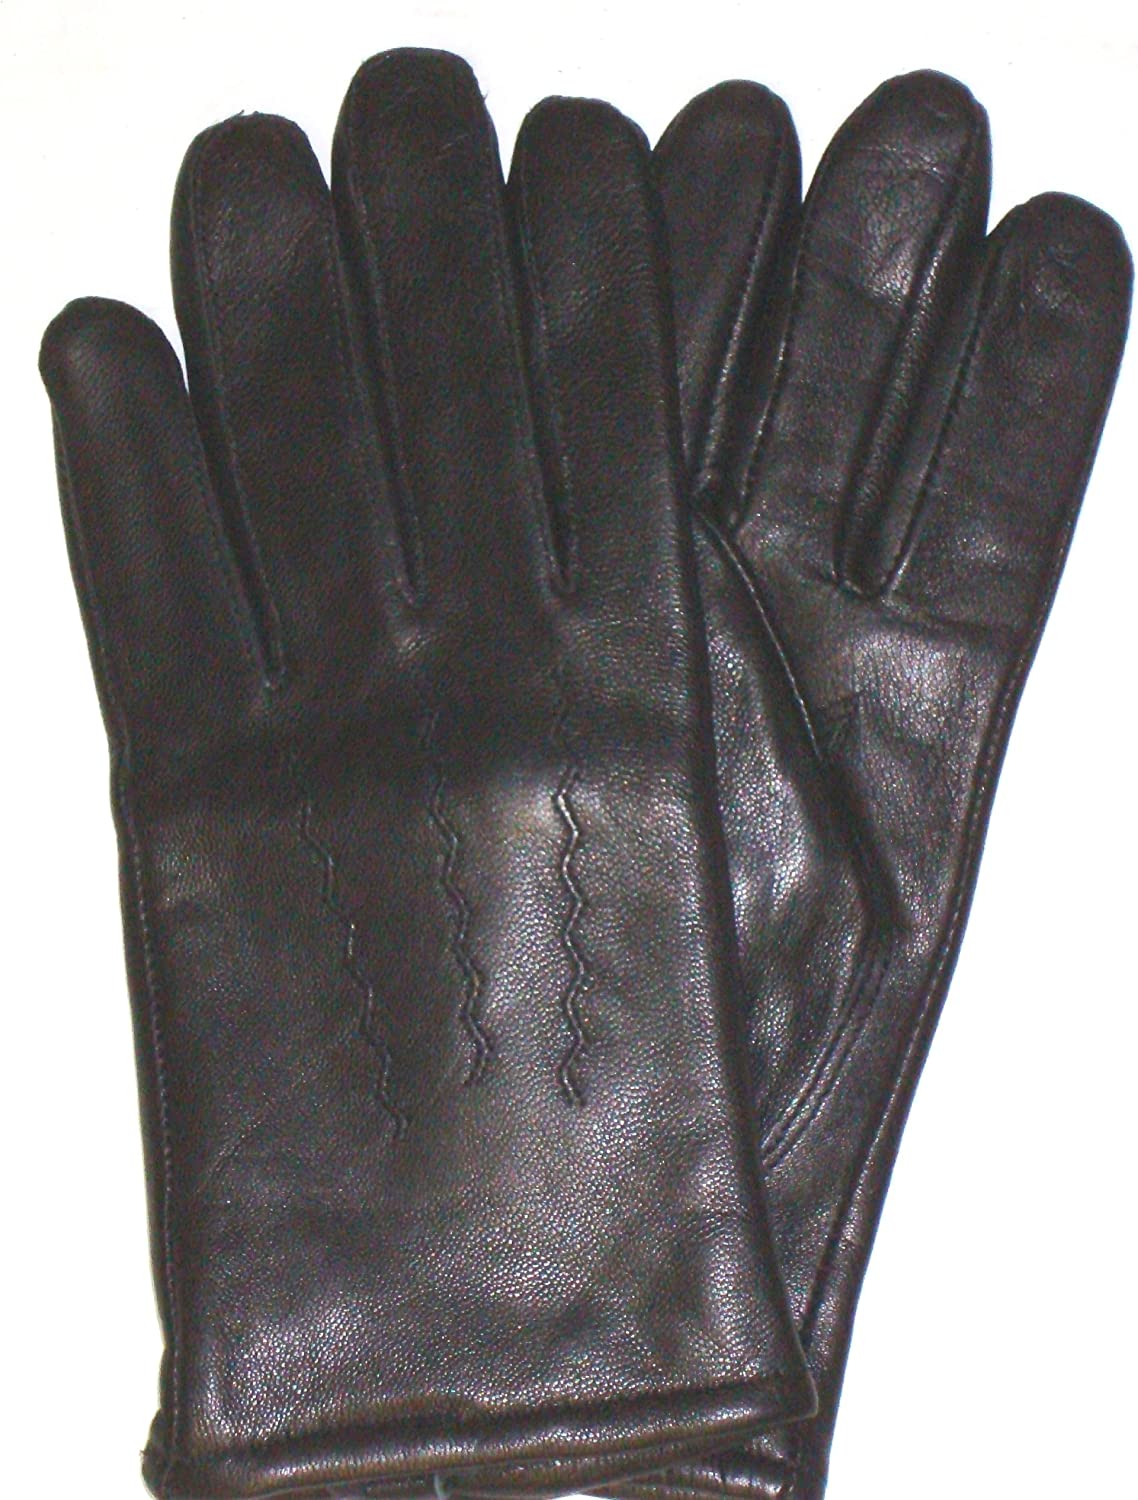 Black Adler Soft Leather Luxurious Gloves Men for Fixed price for sale Looking gift